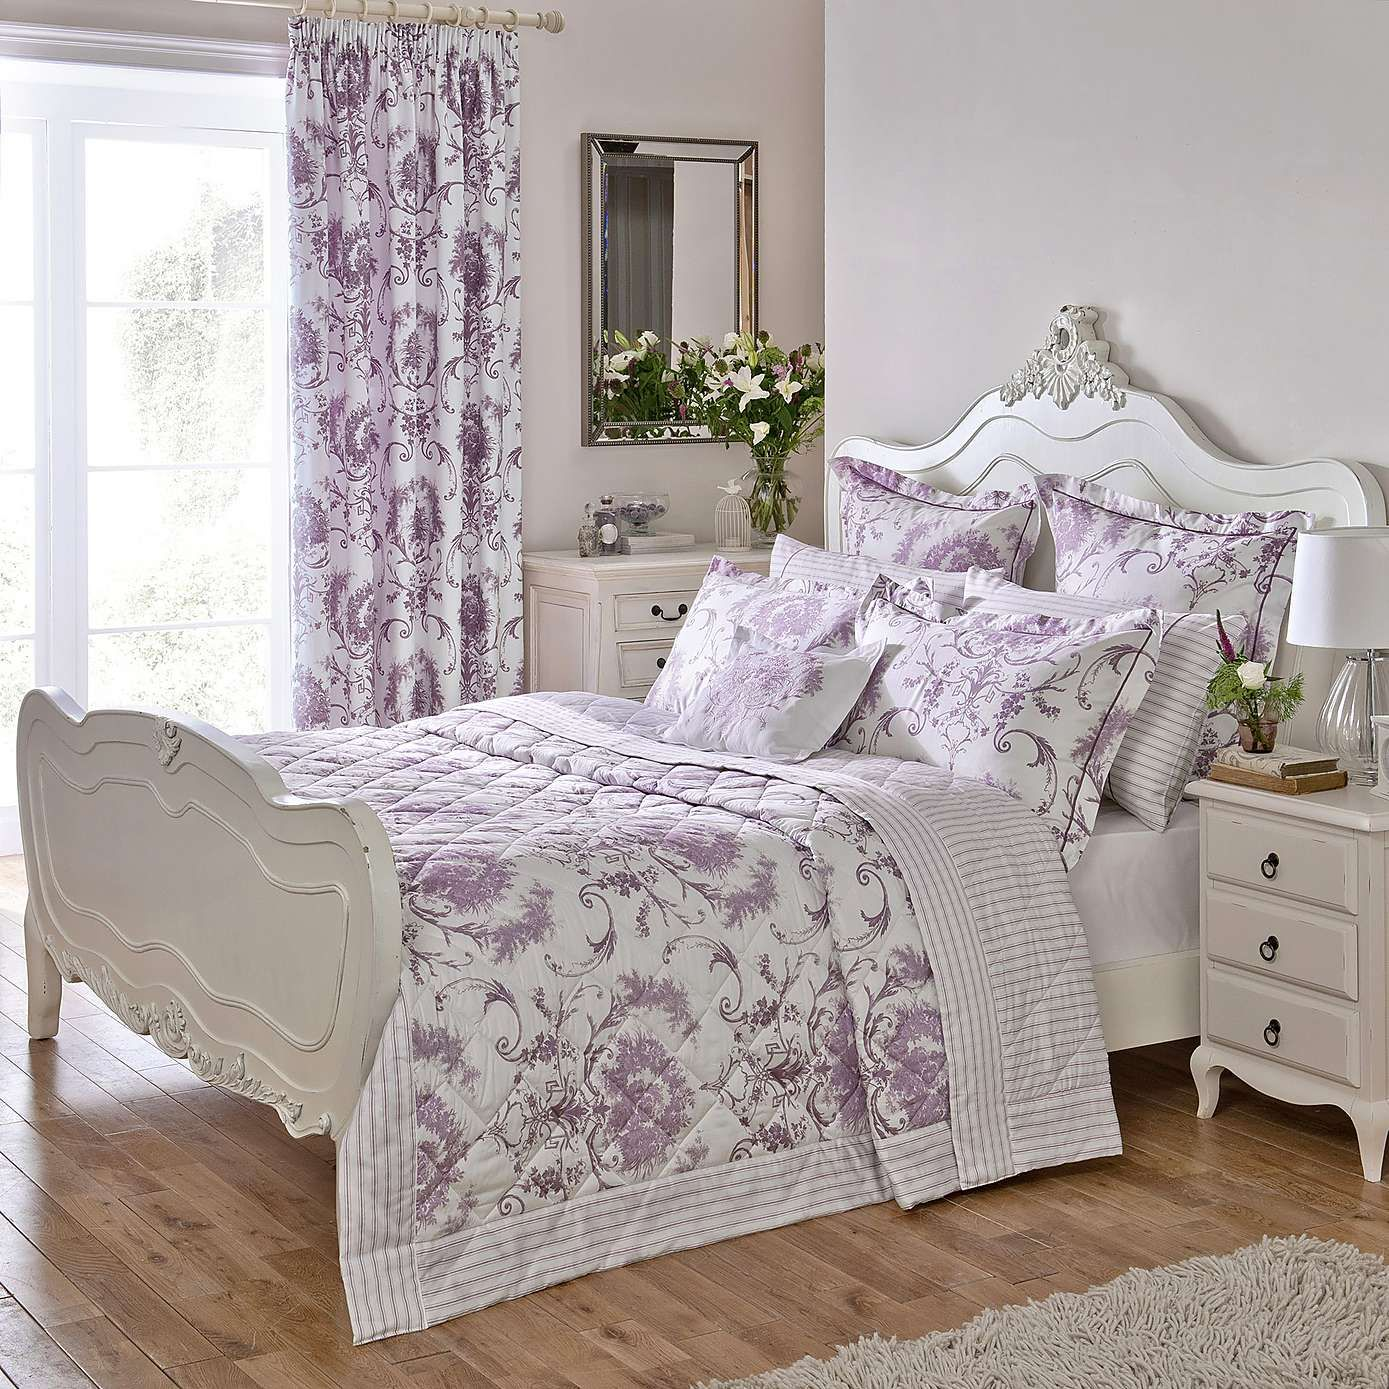 dorma heather toile lined pencil pleat curtains dunelm. Black Bedroom Furniture Sets. Home Design Ideas